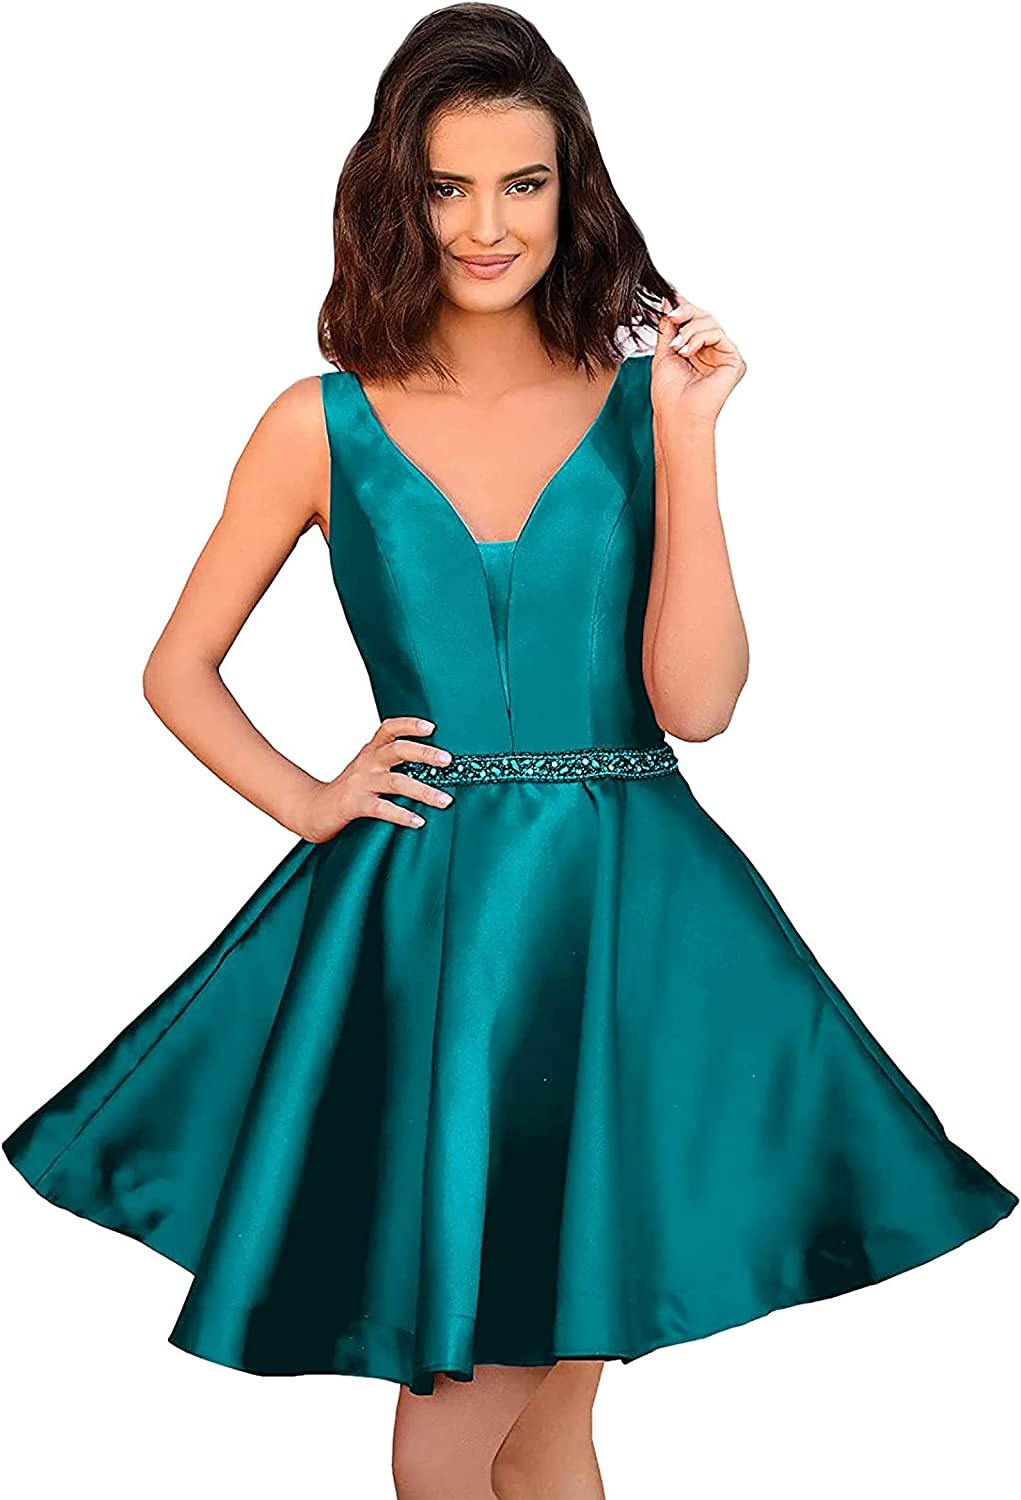 Tianzhihe Women's Satin Ball Gown Mini A line Homecoming Dresses Waist Beaded Formal Prom Cocktail Dress for Party